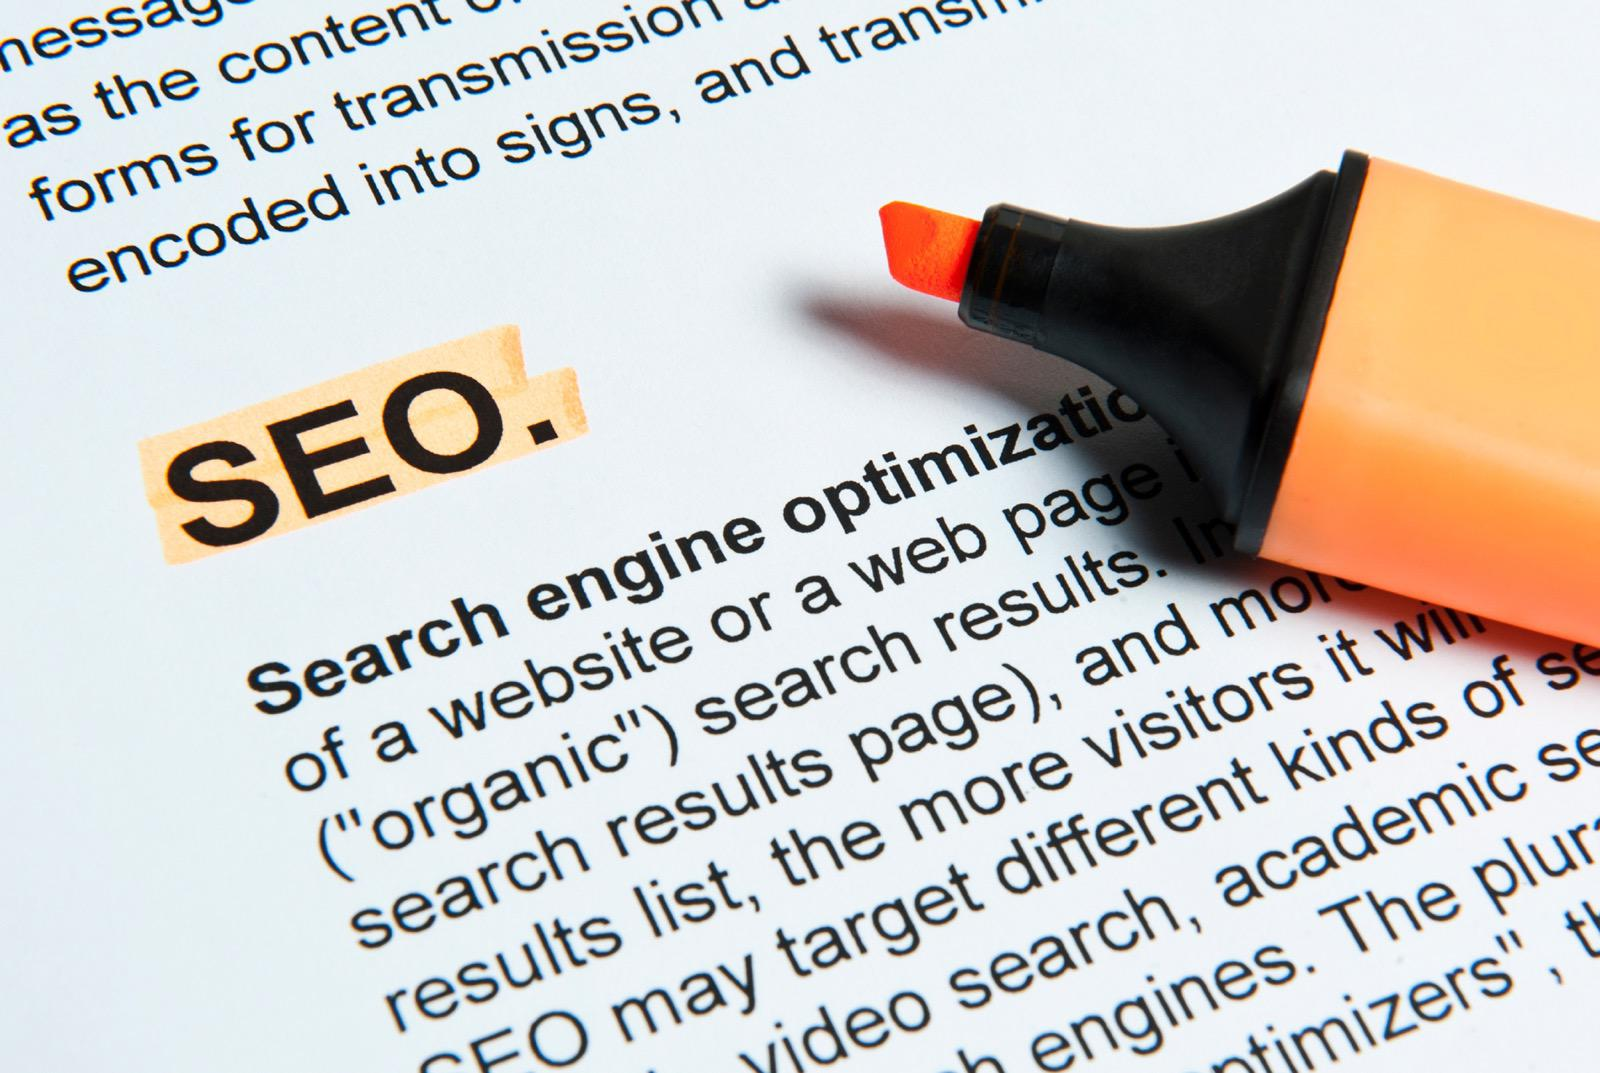 How to Use SEO and Original Content to Manage a Reputation